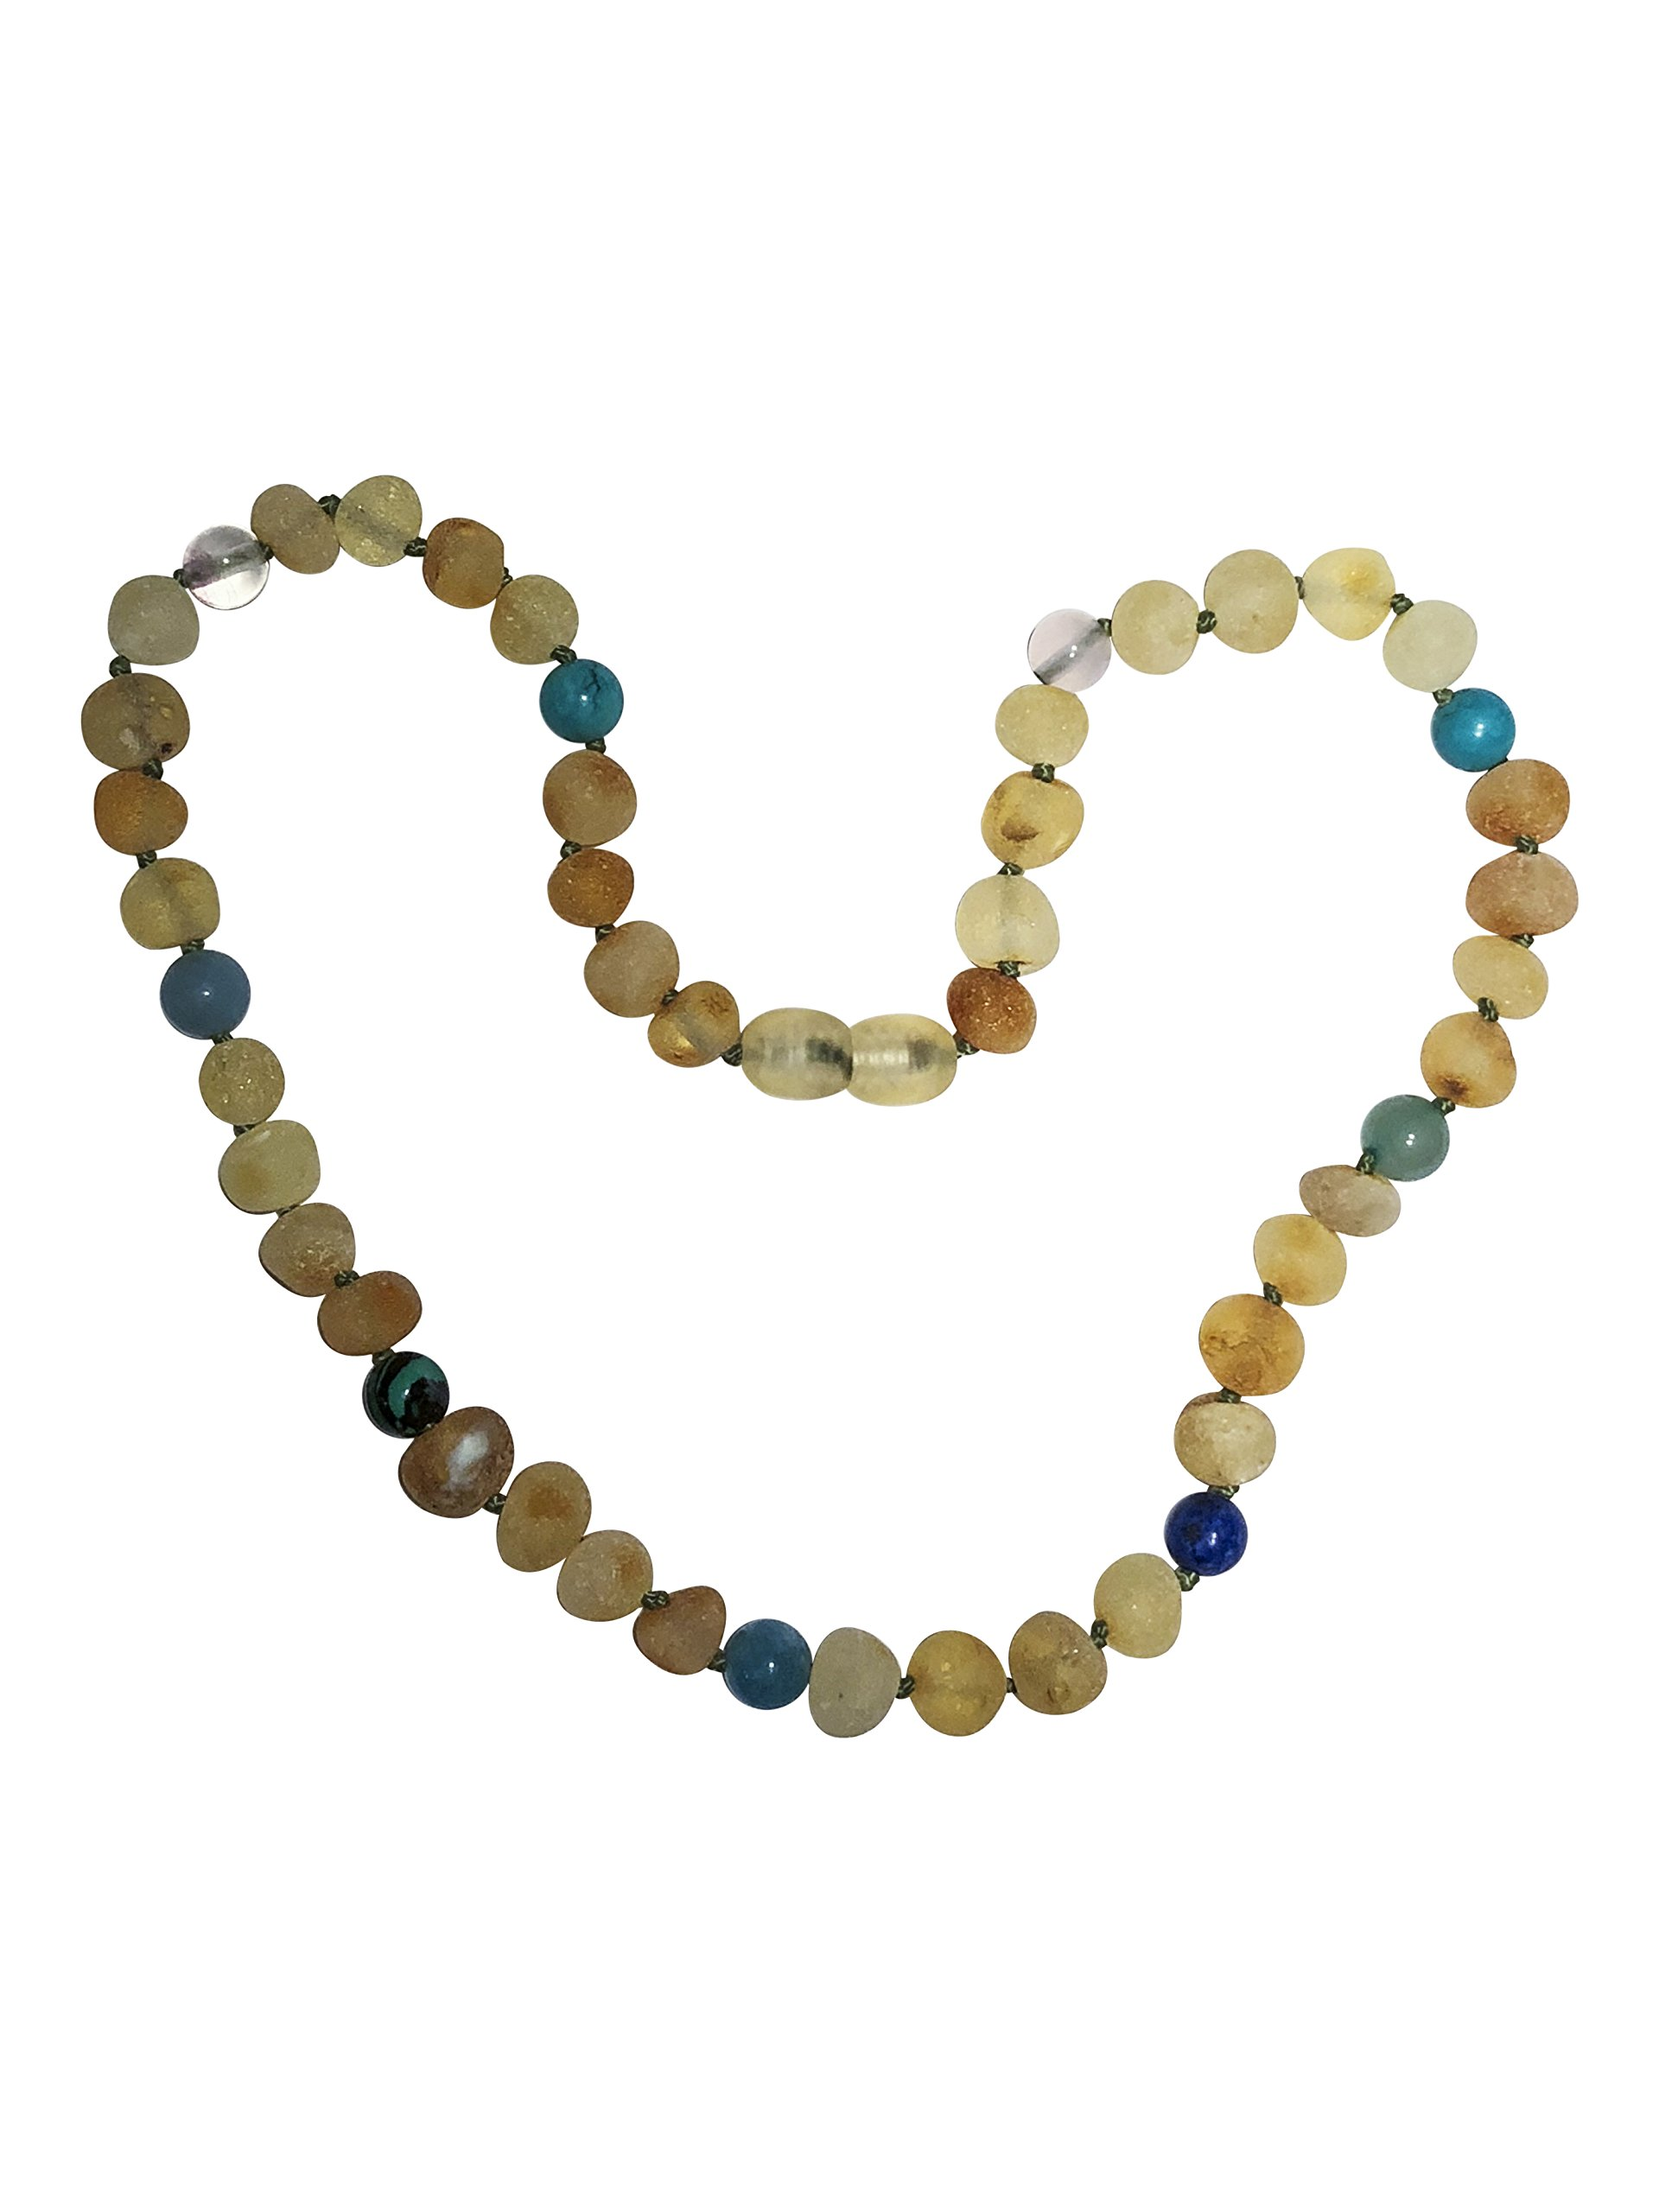 Baltic Amber Necklace for Kids- 15 inch- Immune System Boost - Positivity and Focus. for Children Ages 4-15 (Blue/Green)